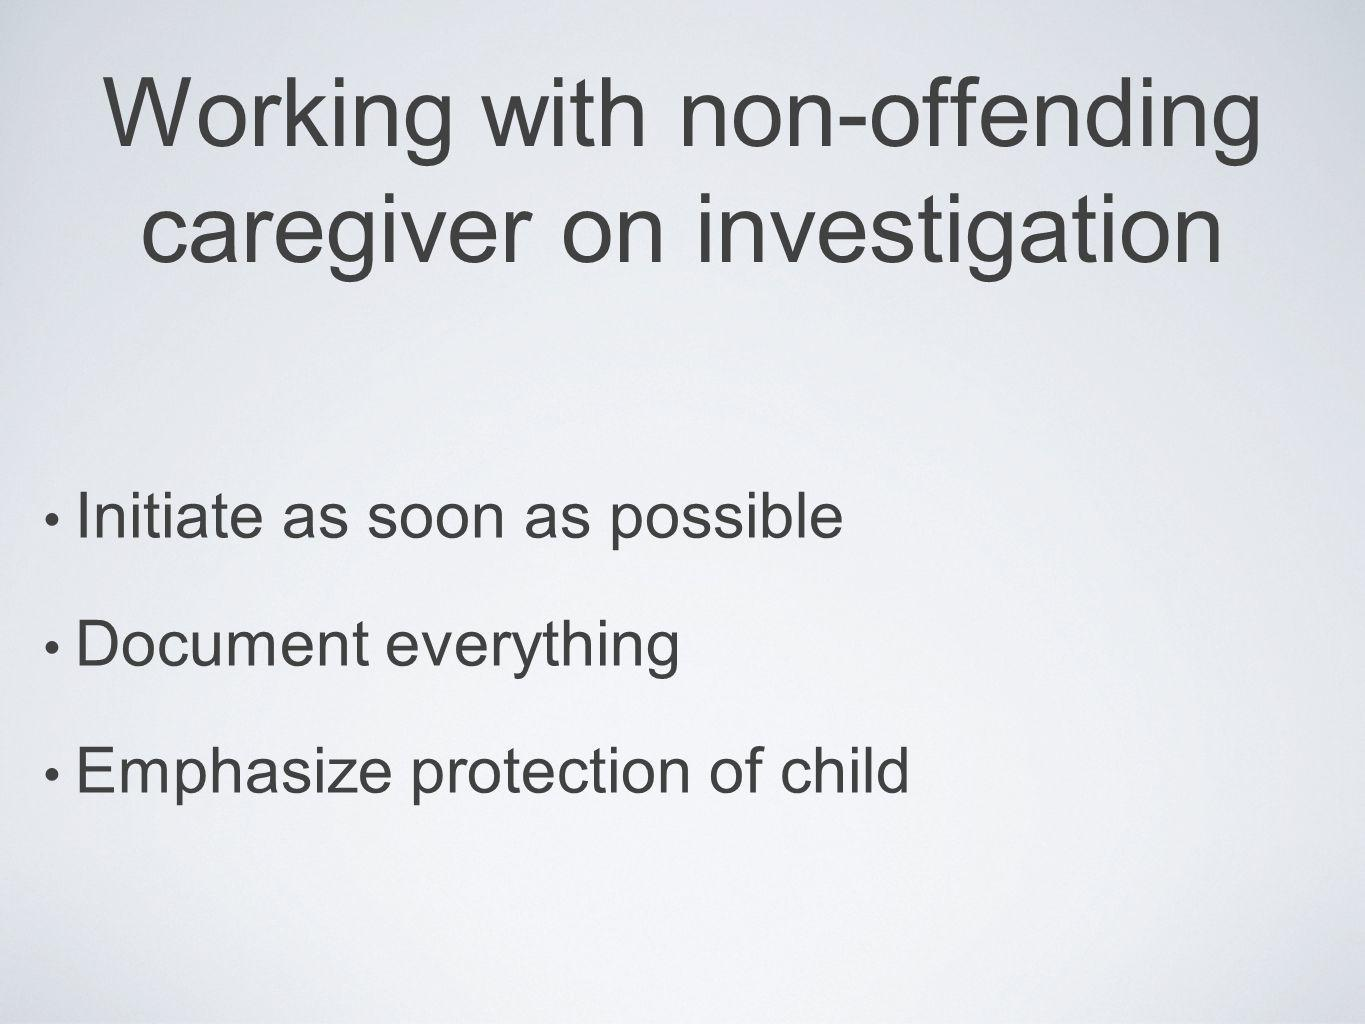 Working with non-offending caregiver on investigation Initiate as soon as possible Document everything Emphasize protection of child